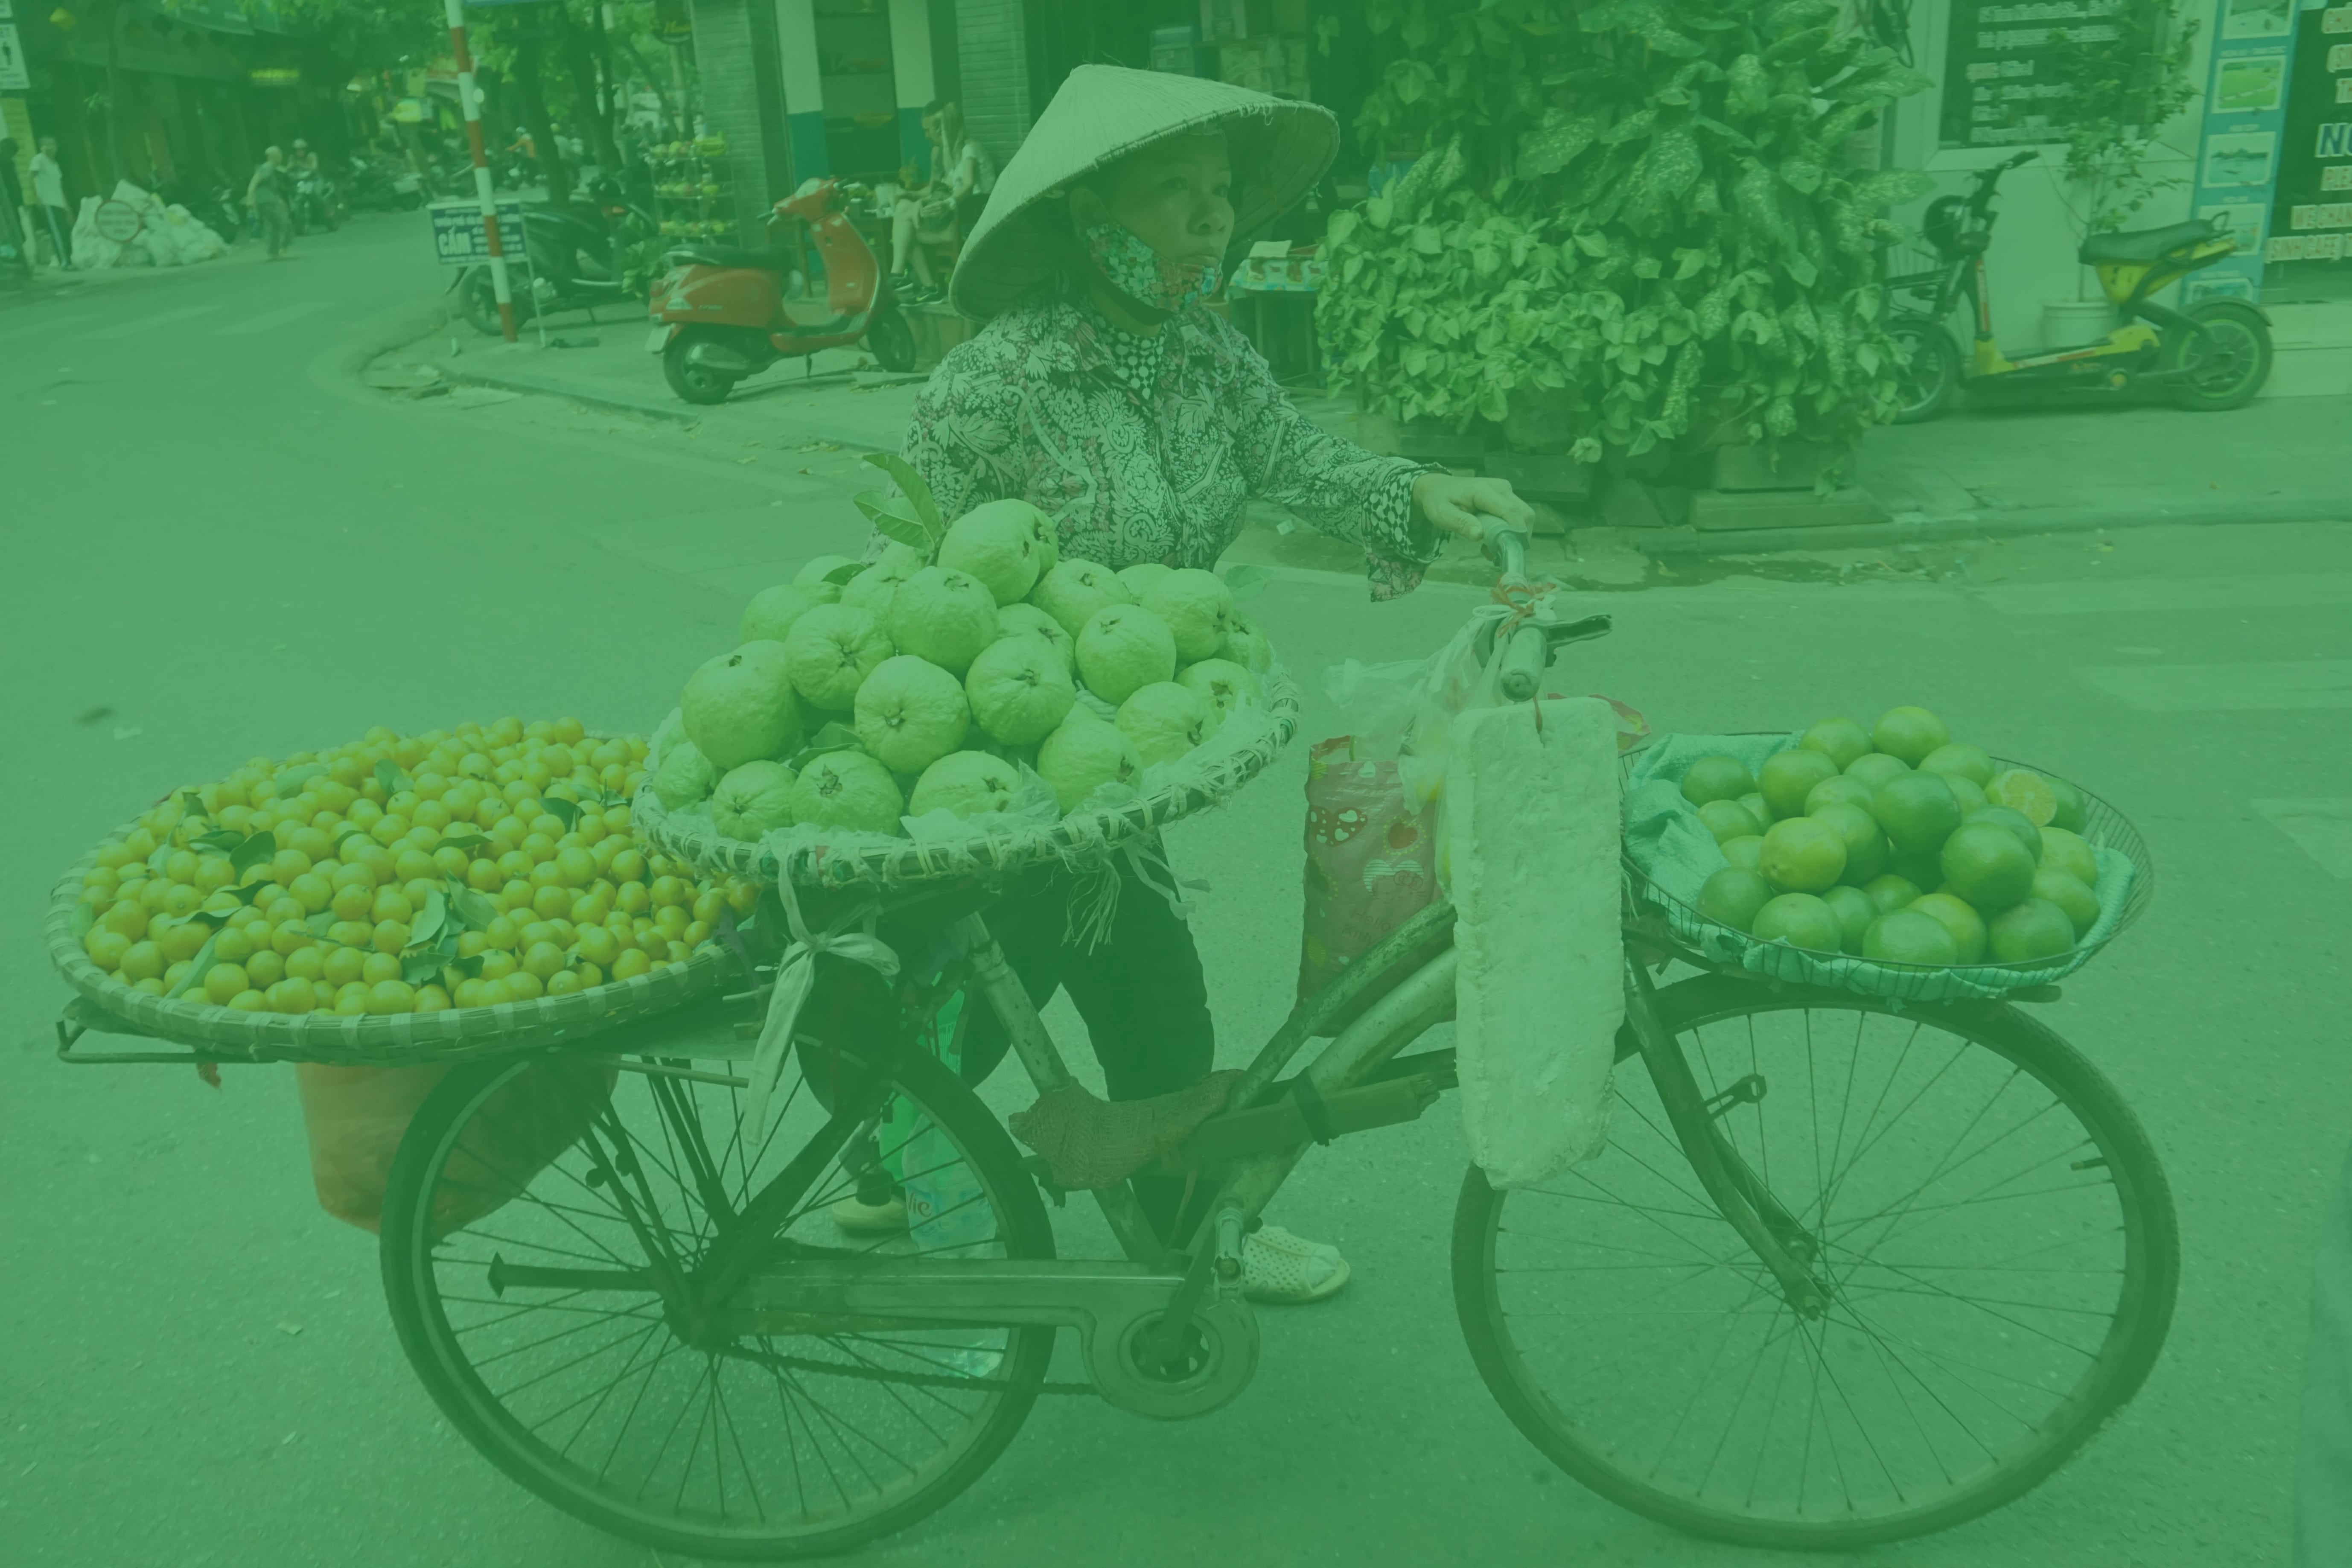 Woman rides a bike with a lot of food on it